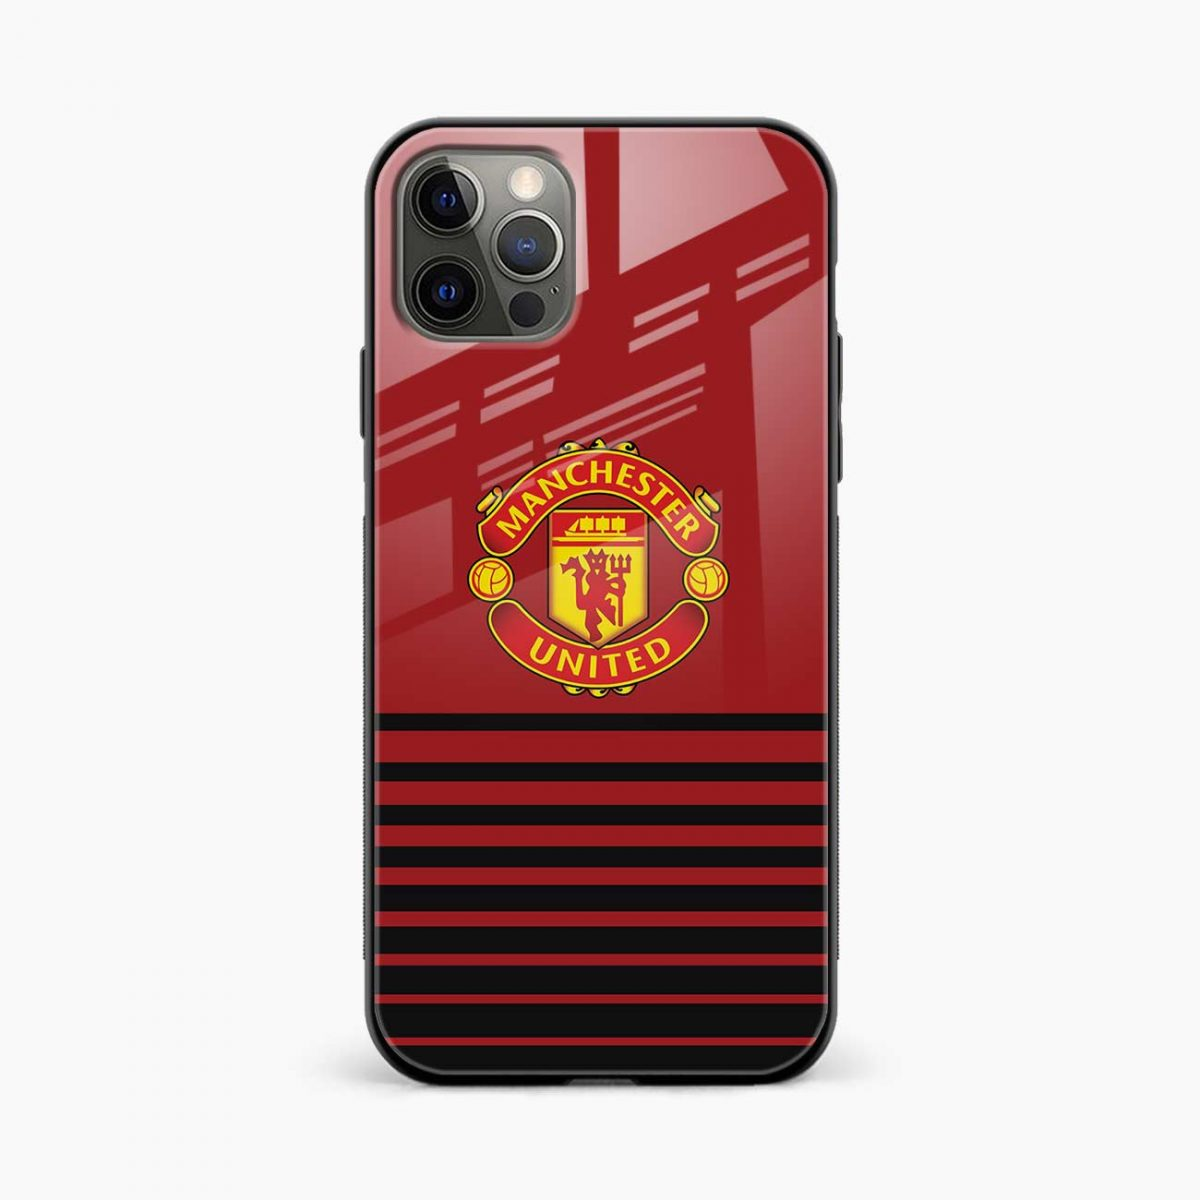 manchester united iphone pro back cover front view